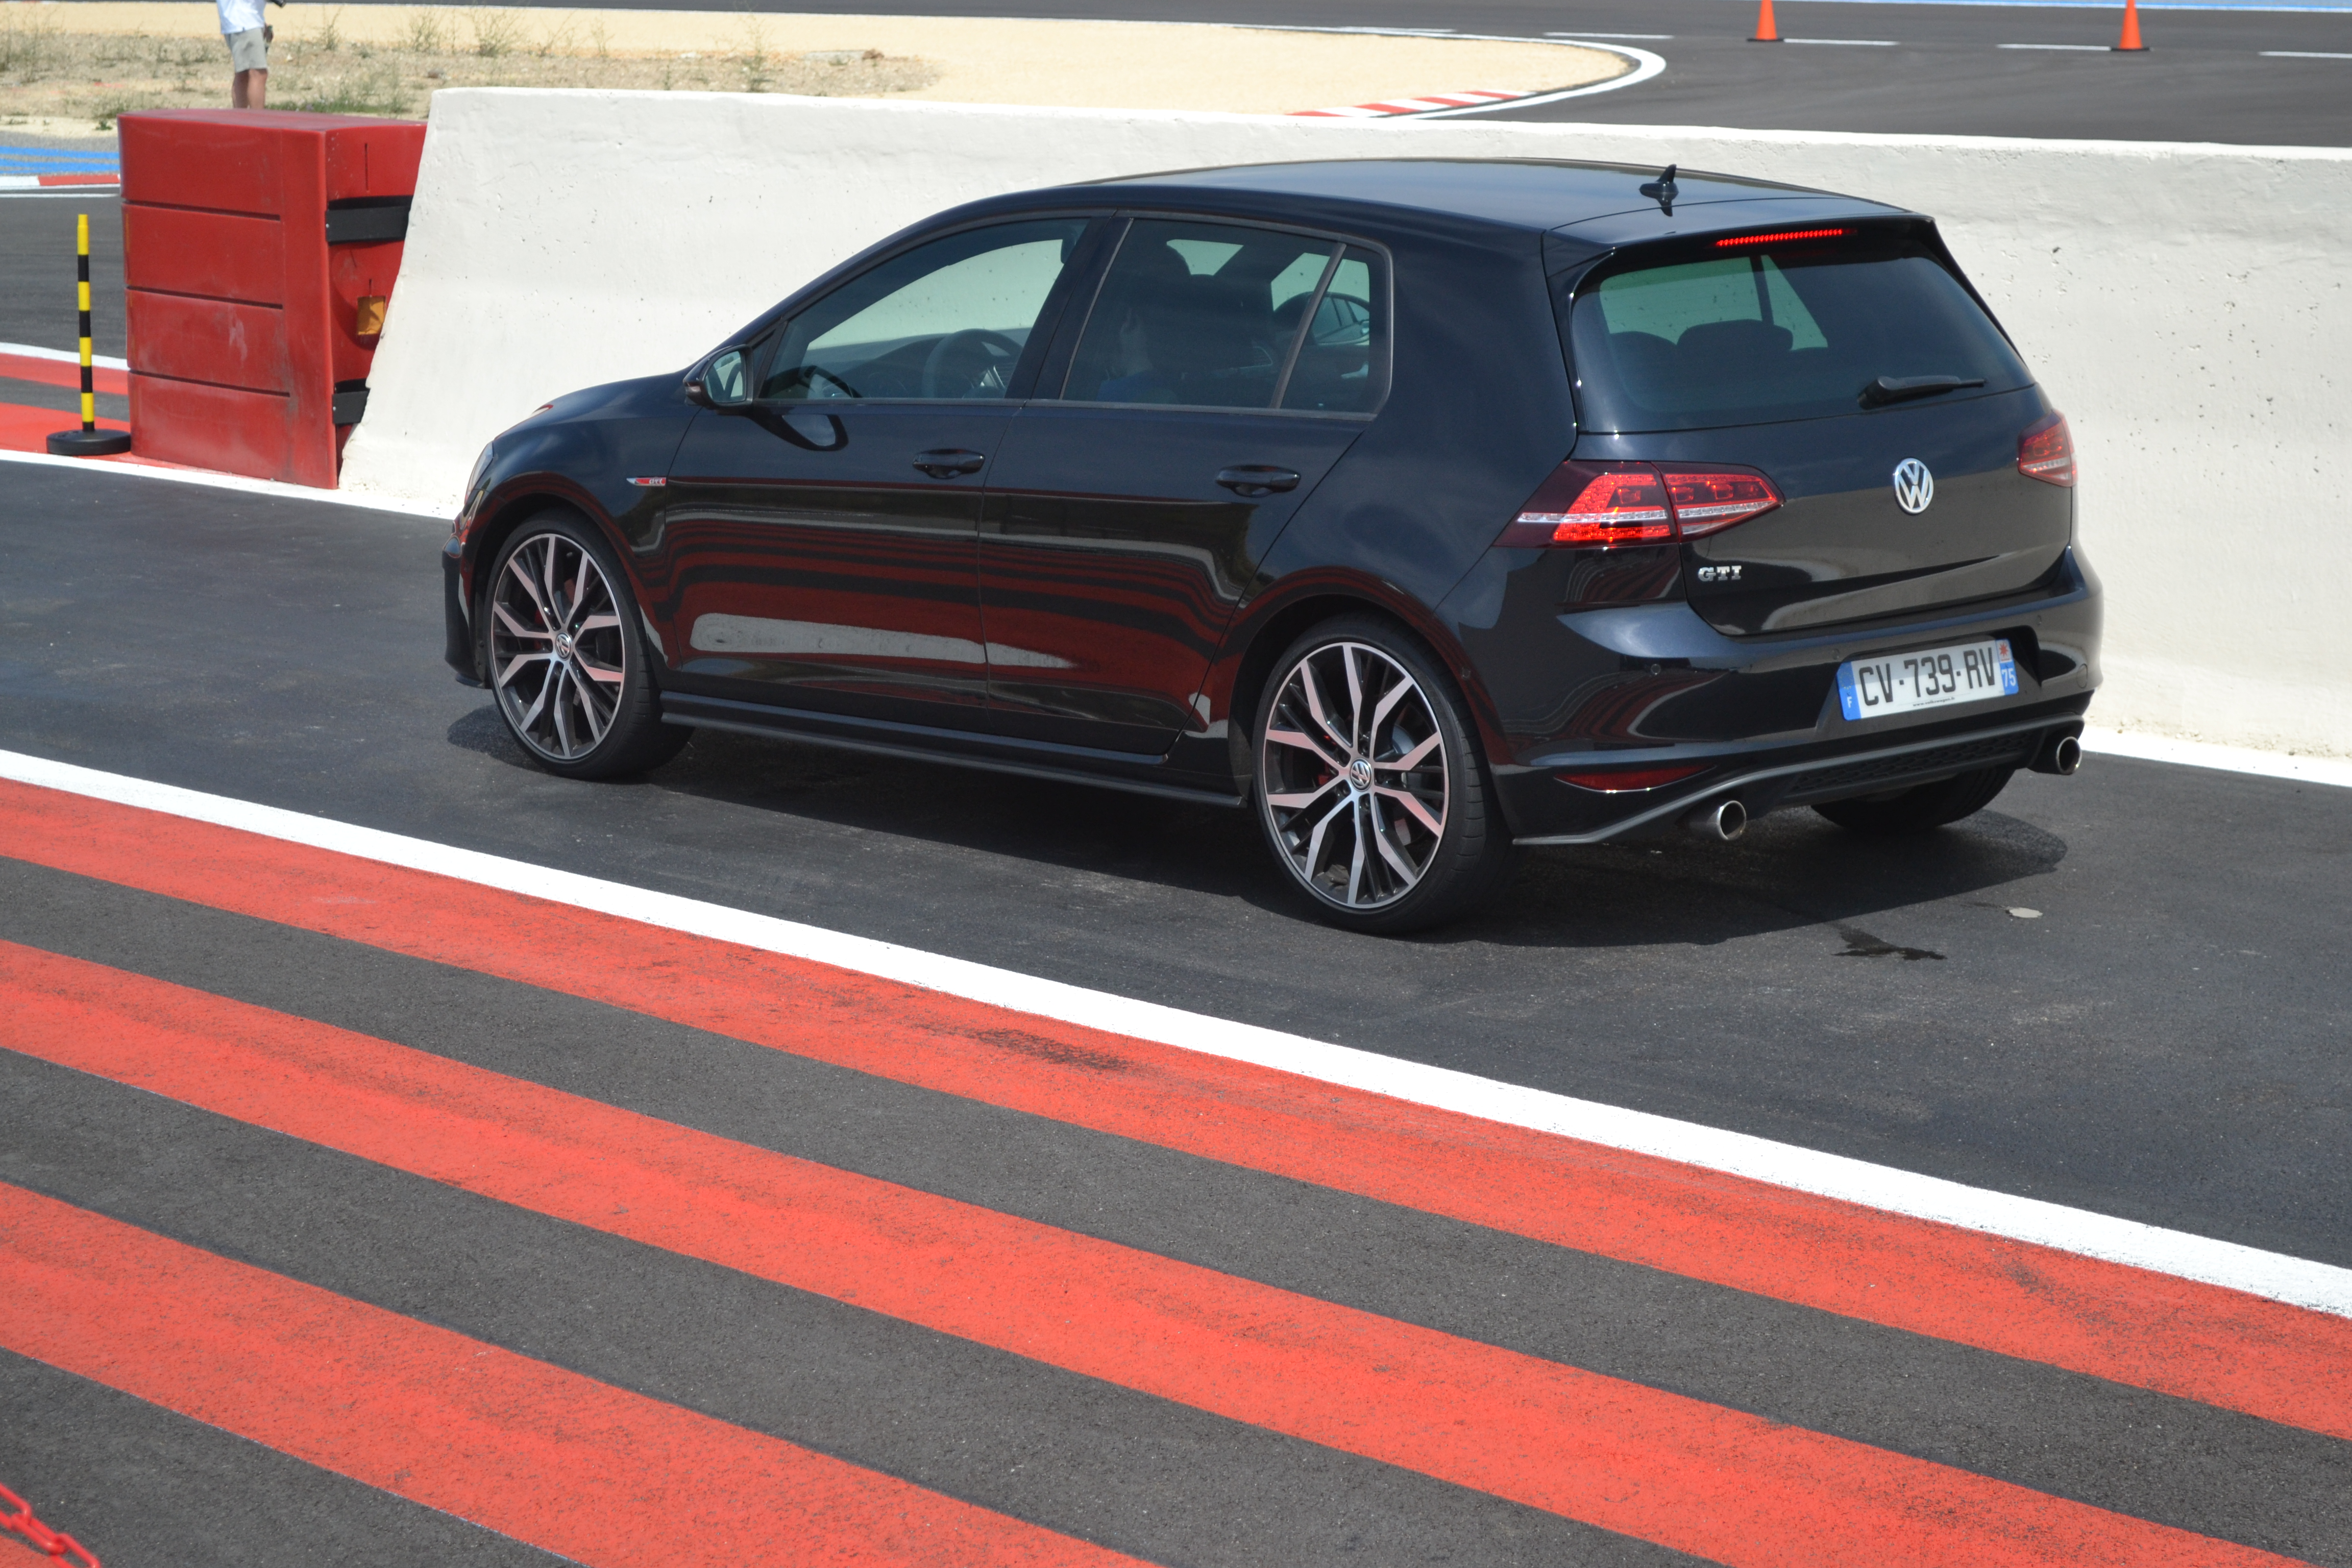 golf gti essai de la nouvelle sportive volkswagen sur. Black Bedroom Furniture Sets. Home Design Ideas